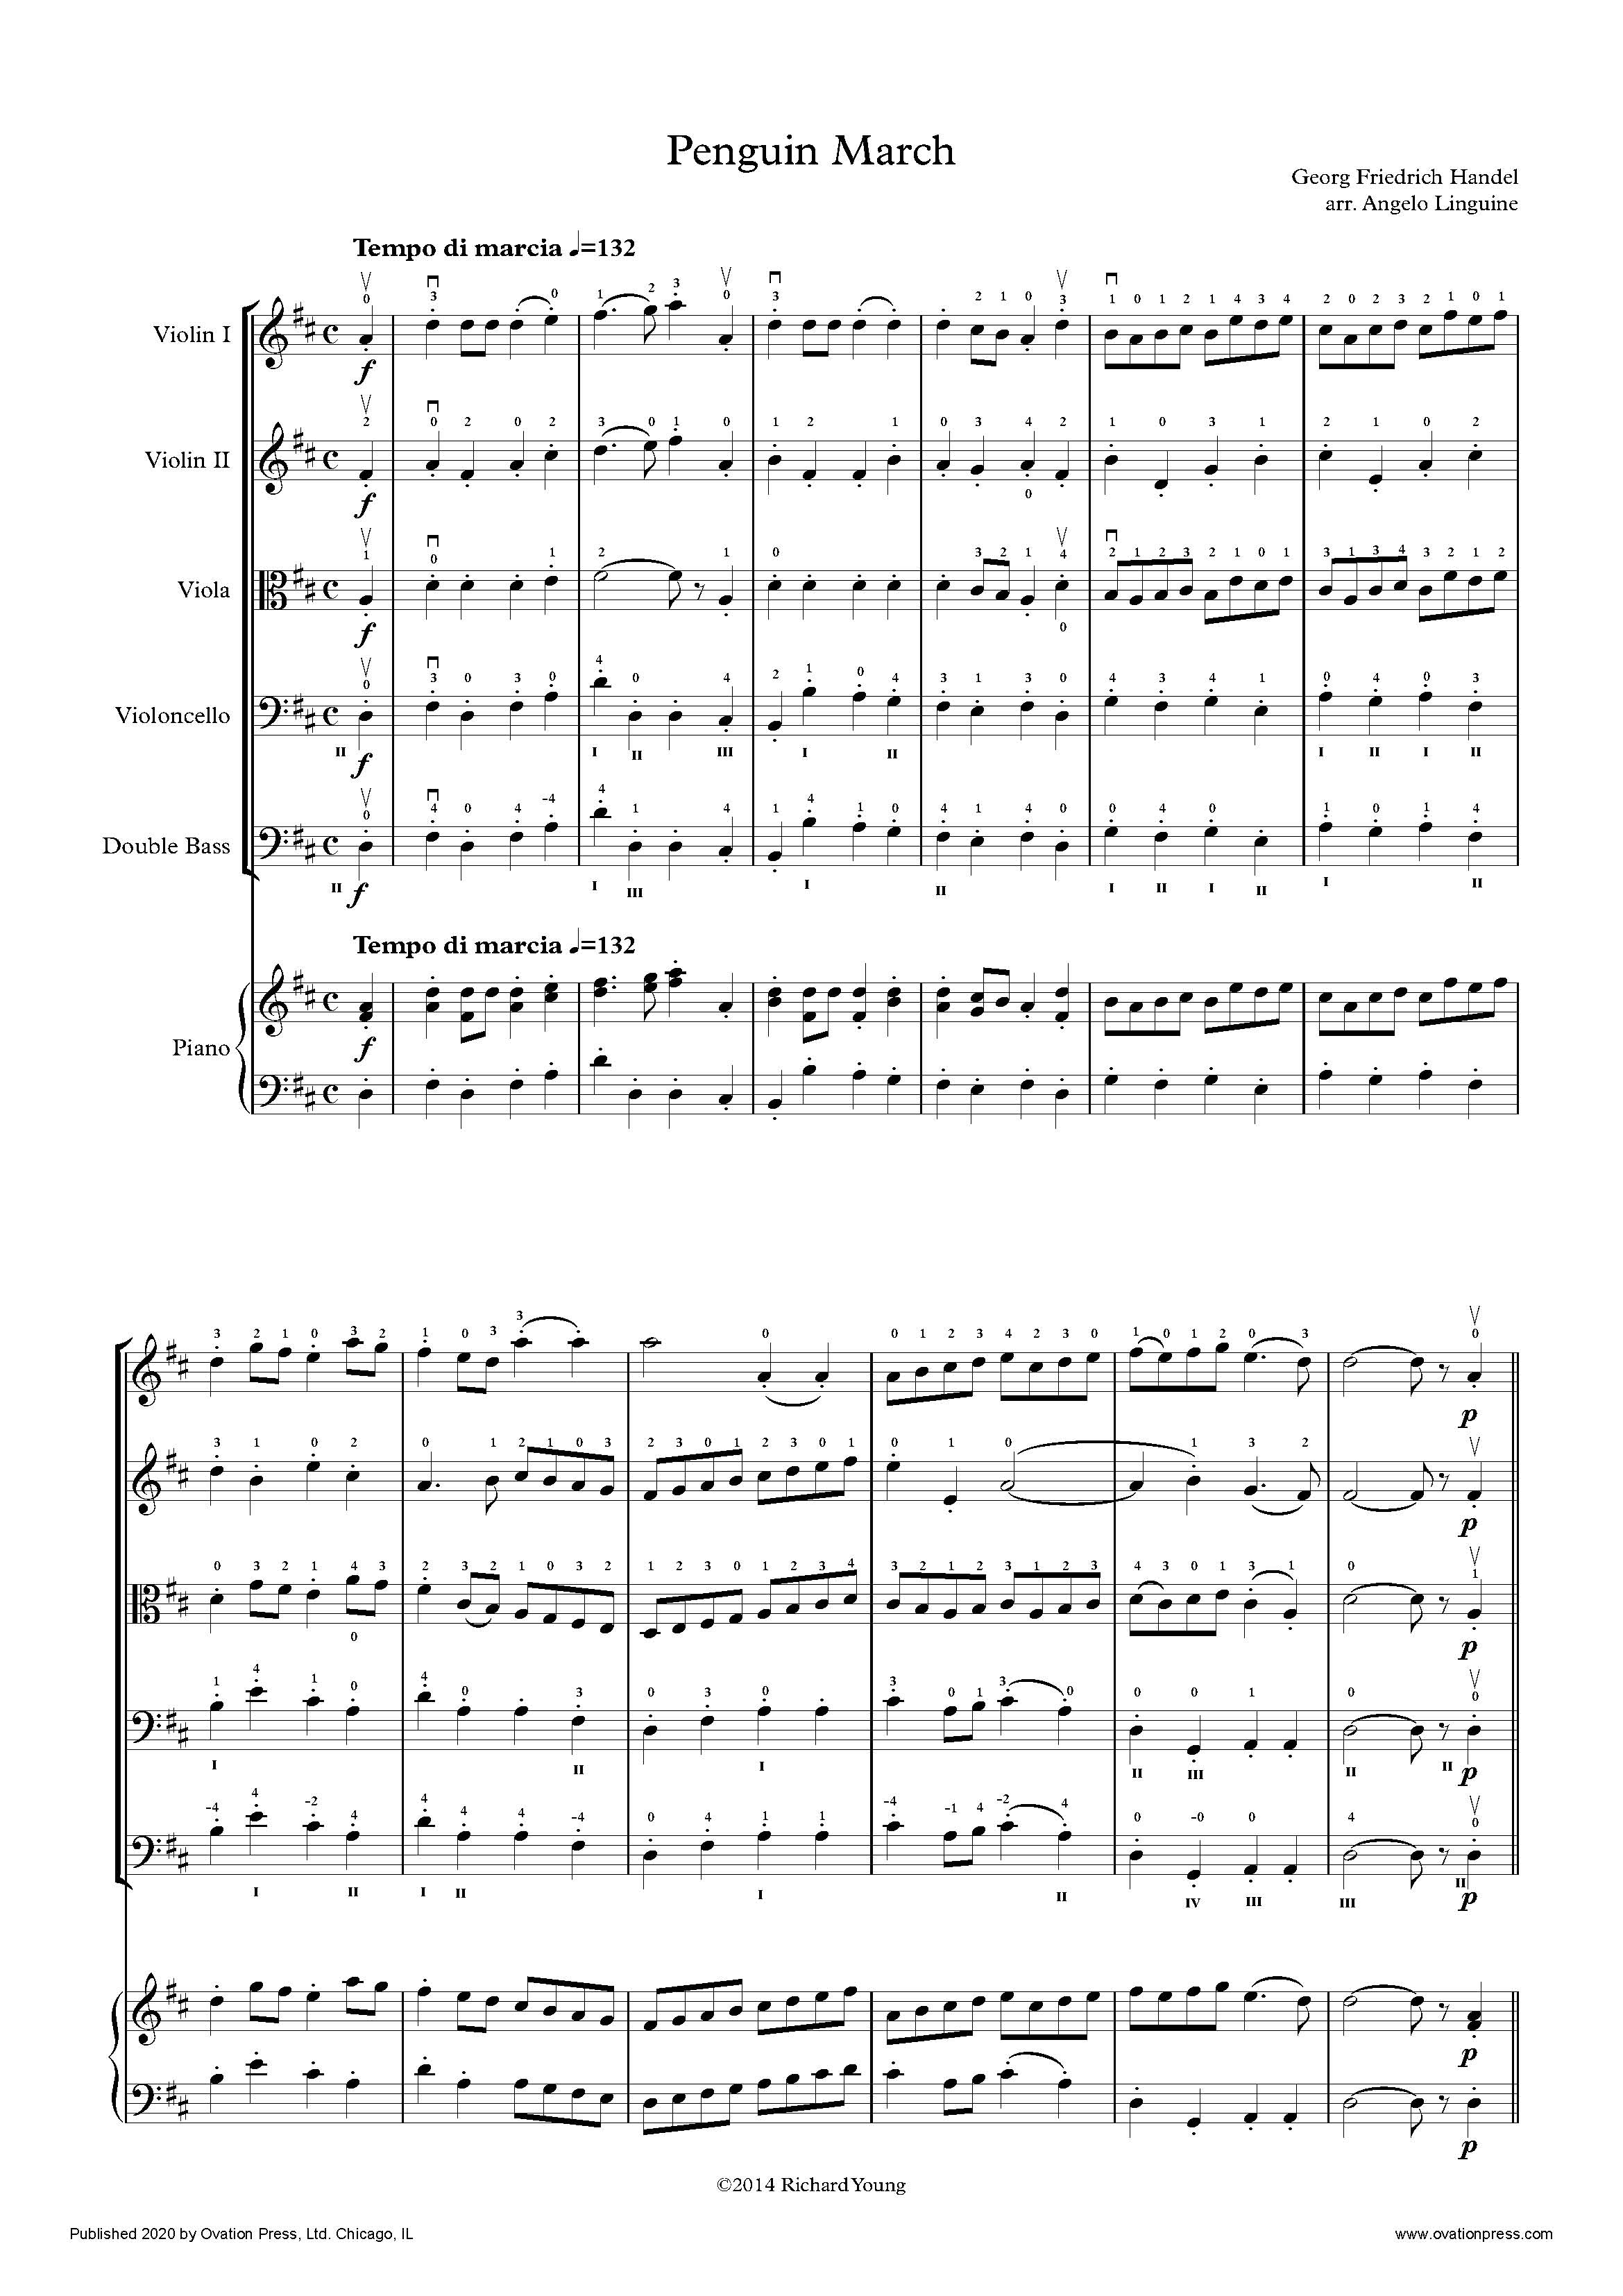 Handel Penguin March (for Elementary String Orchestra)